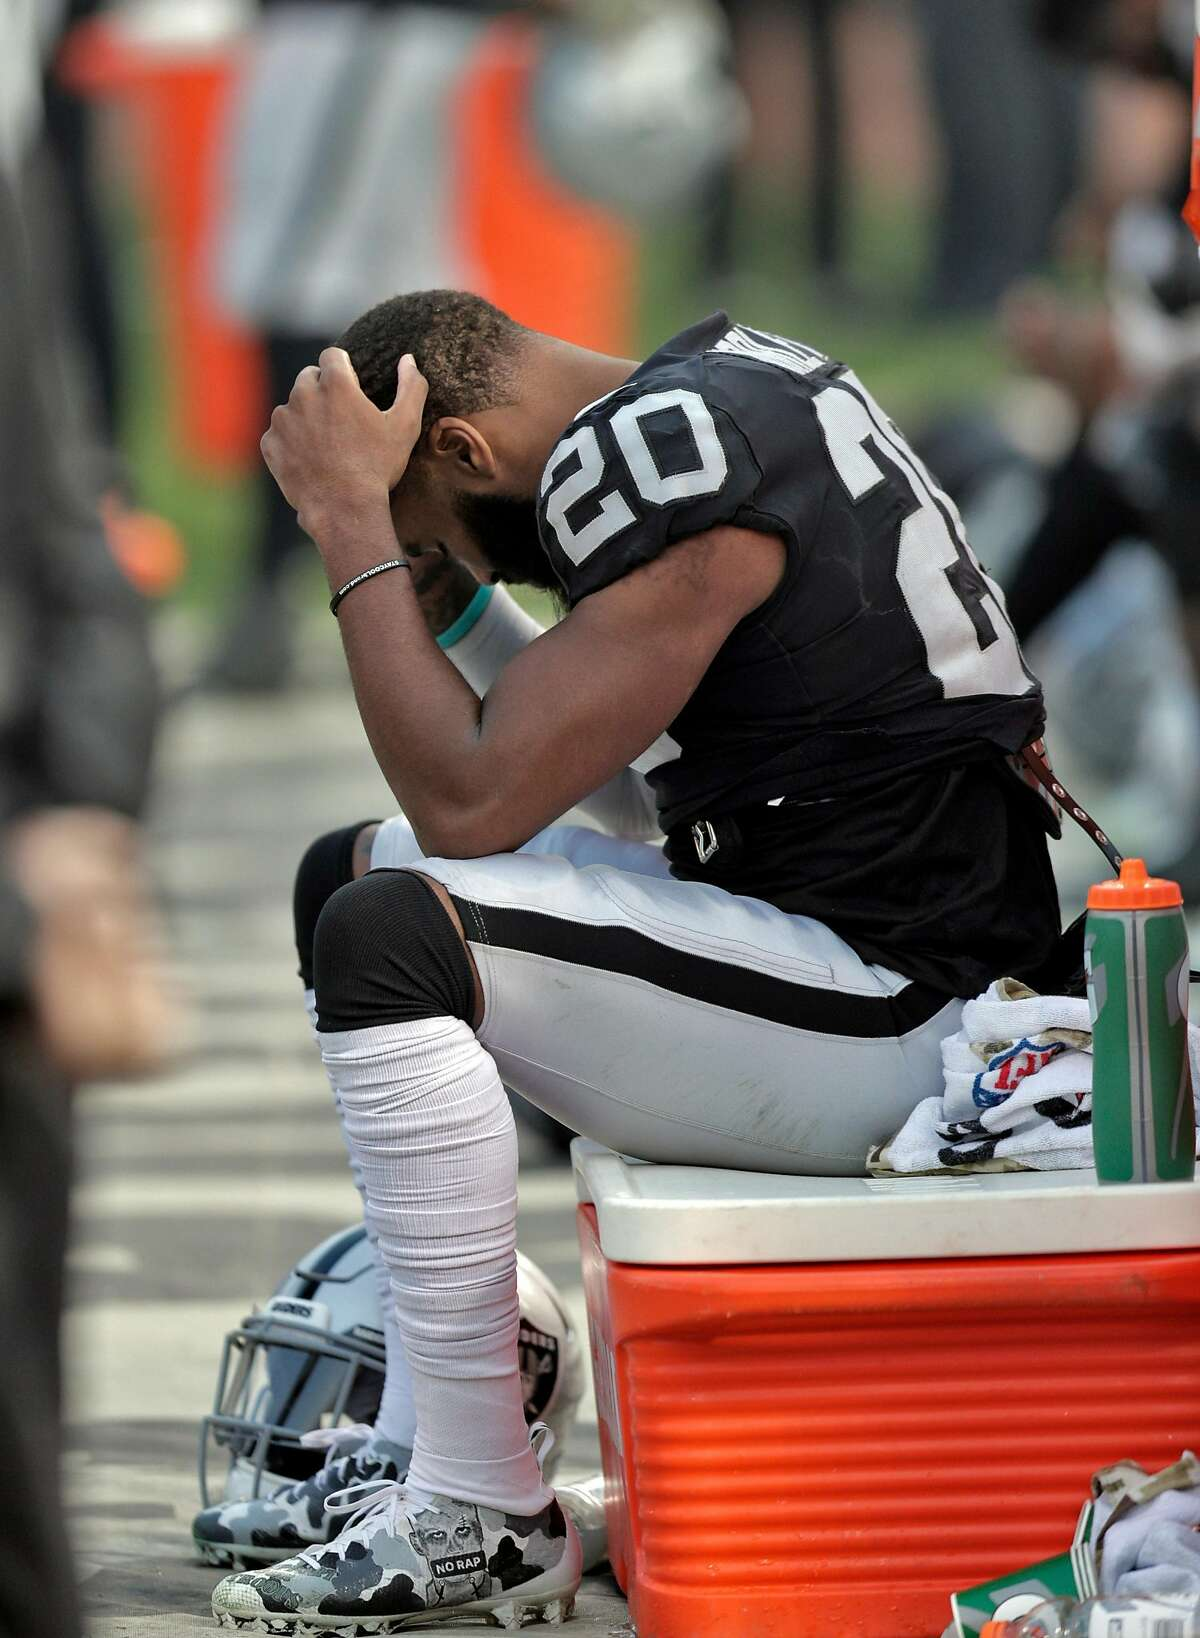 Cornerback Daryl Worley (20) on the bench in the final seconds of the game as the Oakland Raiders play the Los Angeles Chargers at the Coliseum in Oakland, Calif., on Sunday, November 11, 2018. The Chargers won 20-6.